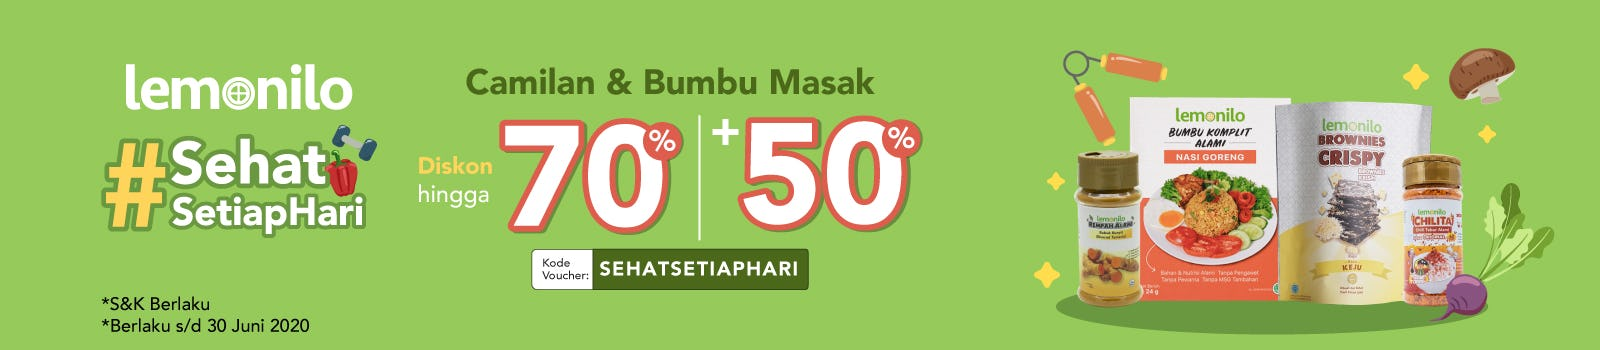 #SehatSetiapHari Diskon Up To 70% + 50% OFF